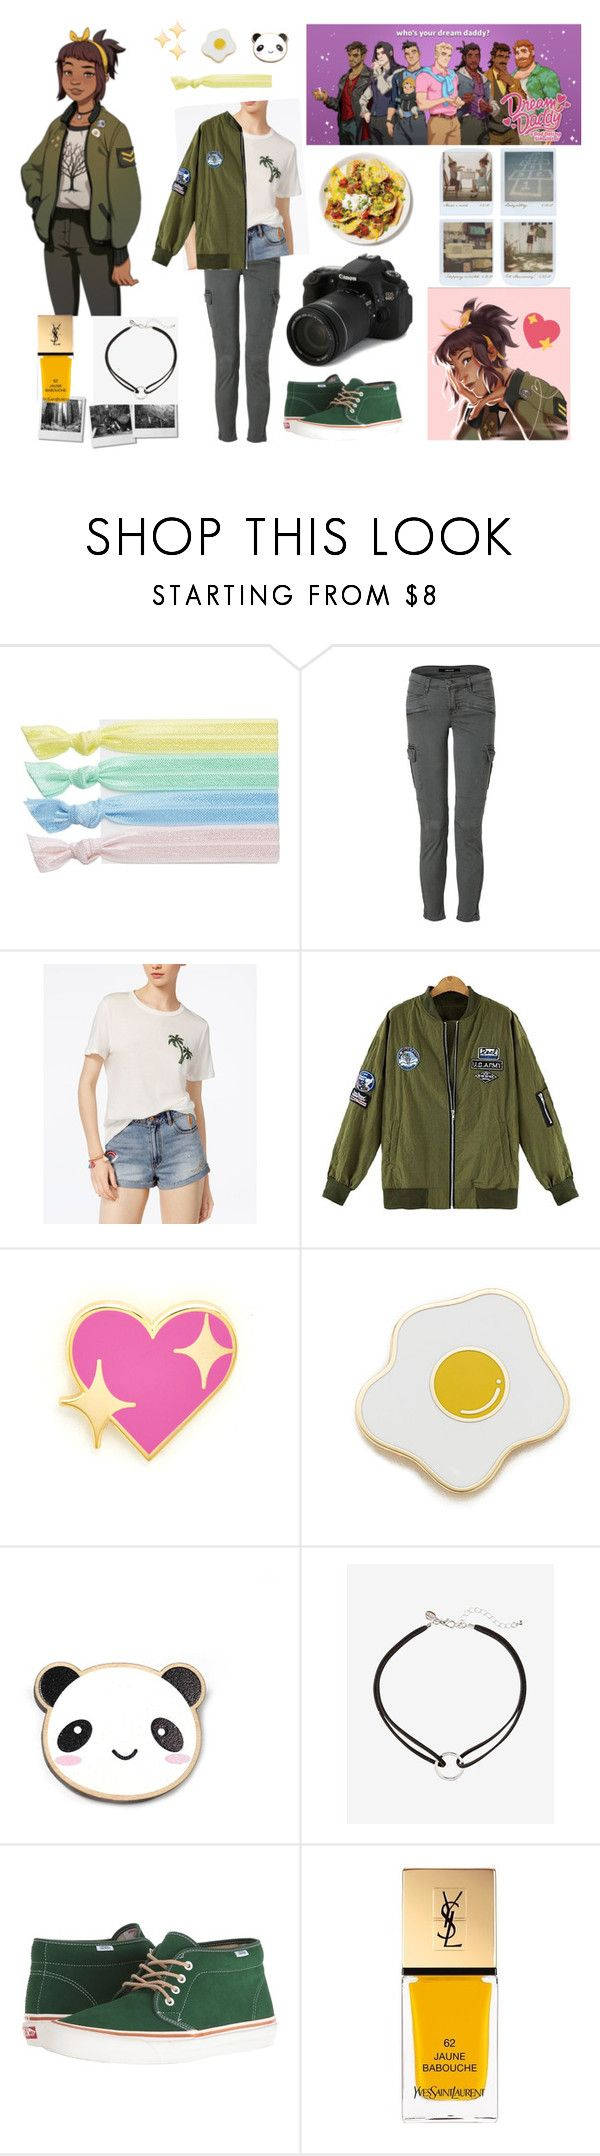 """Dream Daddy - Amanda (panda)"" by thecaptain101 ❤ liked on Polyvore featuring Ribband, J Brand, Thakoon Carbon Copy, PINTRILL, Georgia Perry, Asking For Trouble, Express, Vans, Yves Saint Laurent and Rachael Ray"